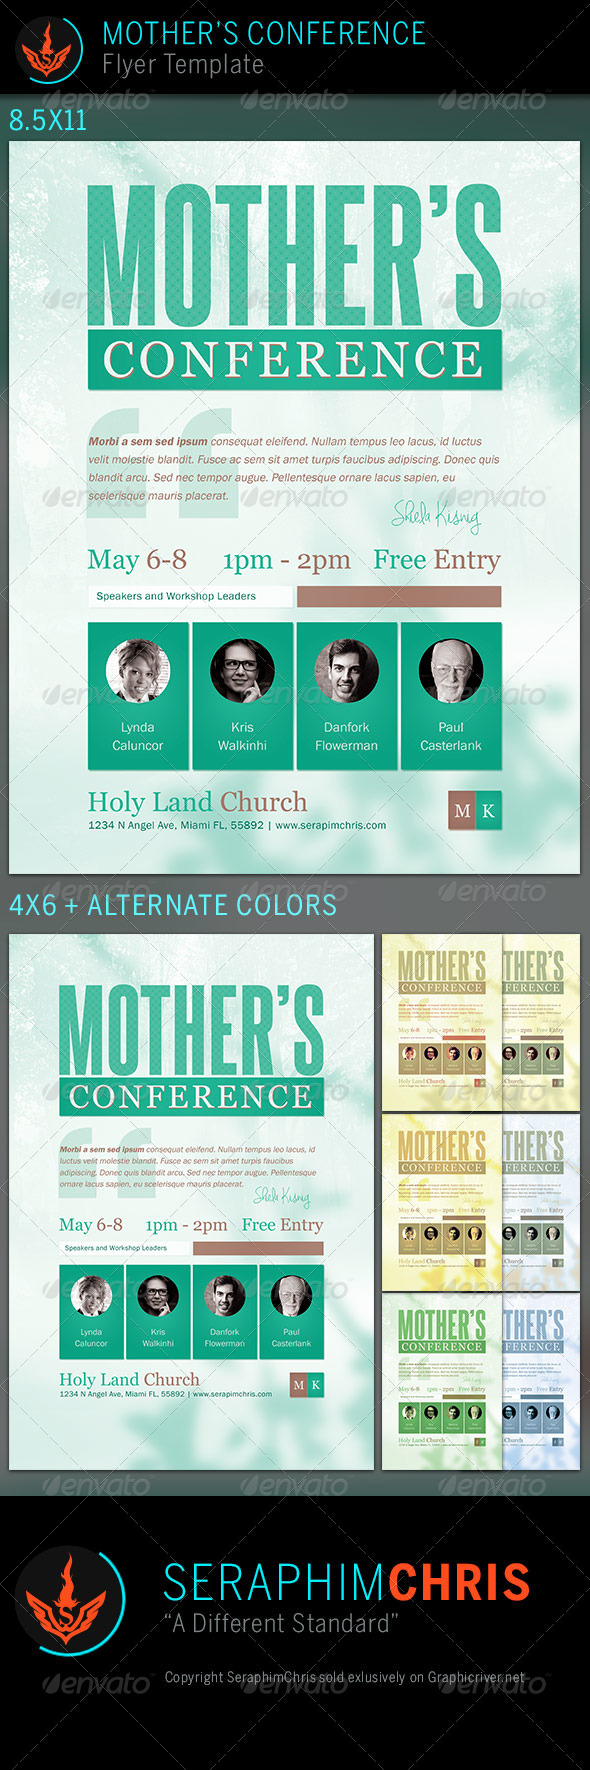 Mother's Conference: Church Flyer Template by SeraphimChris ...